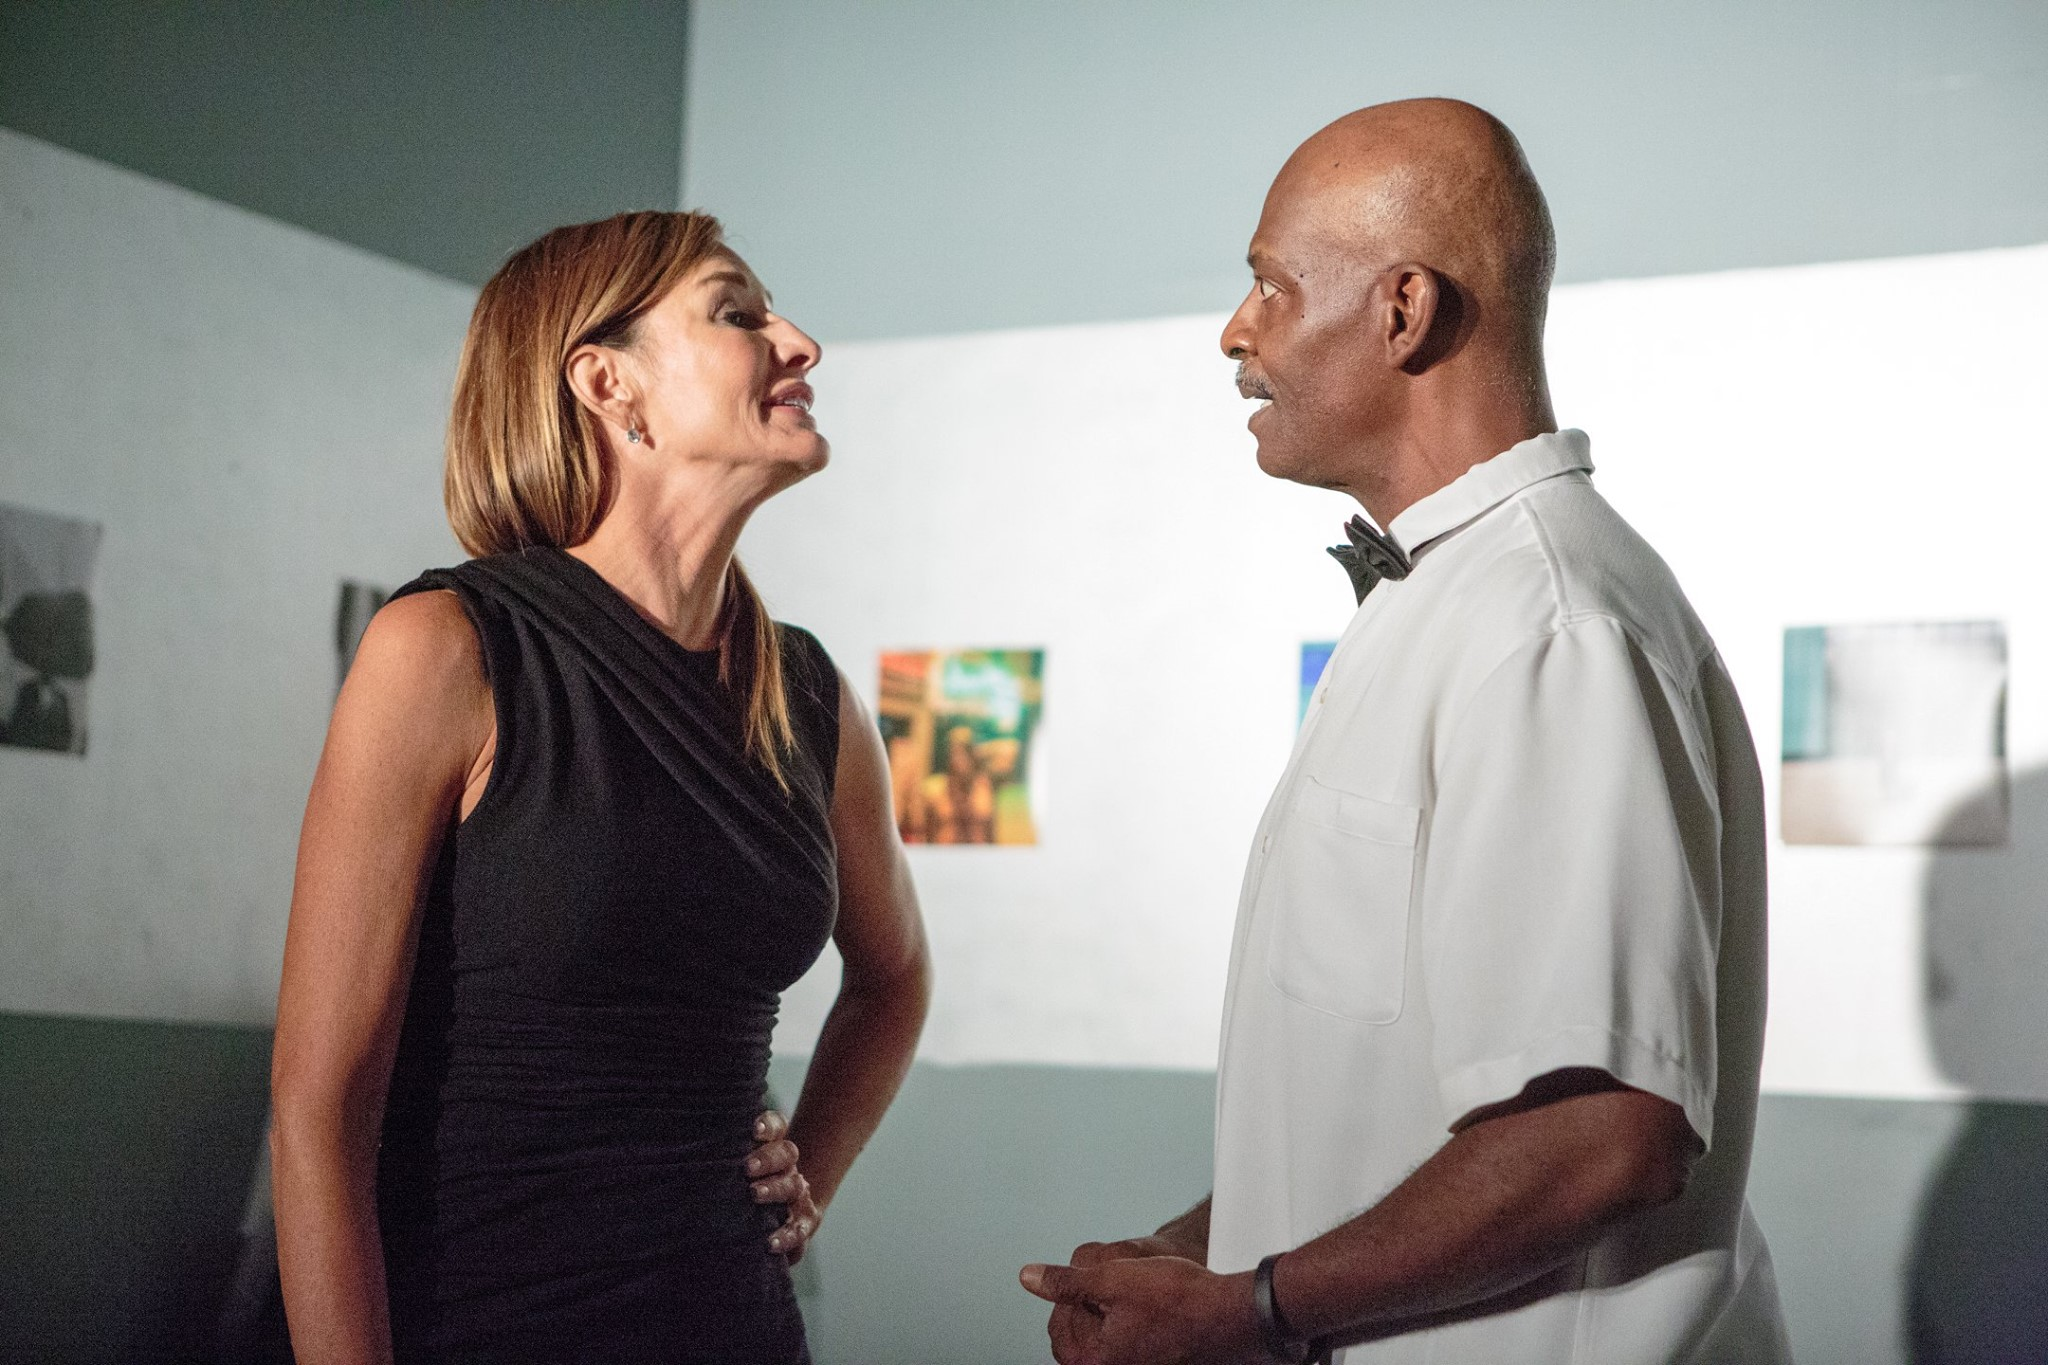 P_Laura Schlapprizzi and Don McClendon.jpg